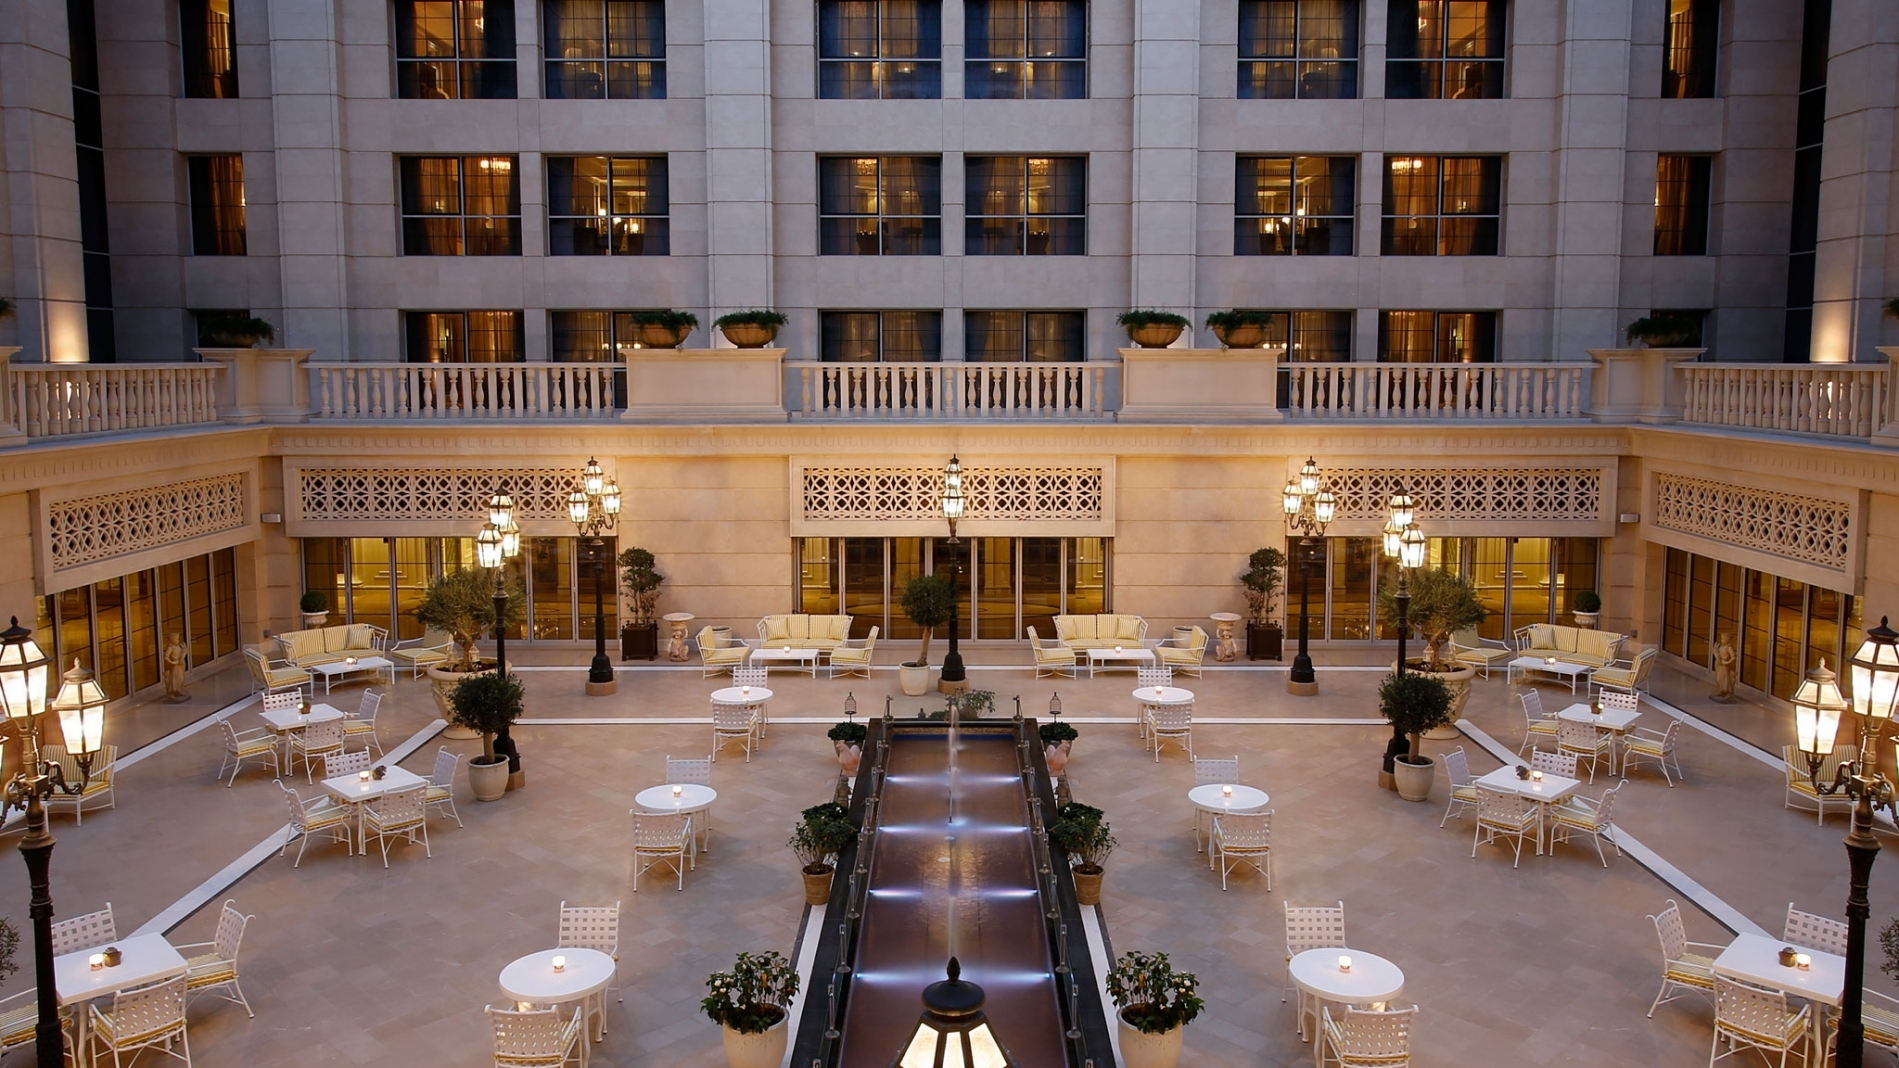 Le patio restaurant dubai at st regis dubai for St regis